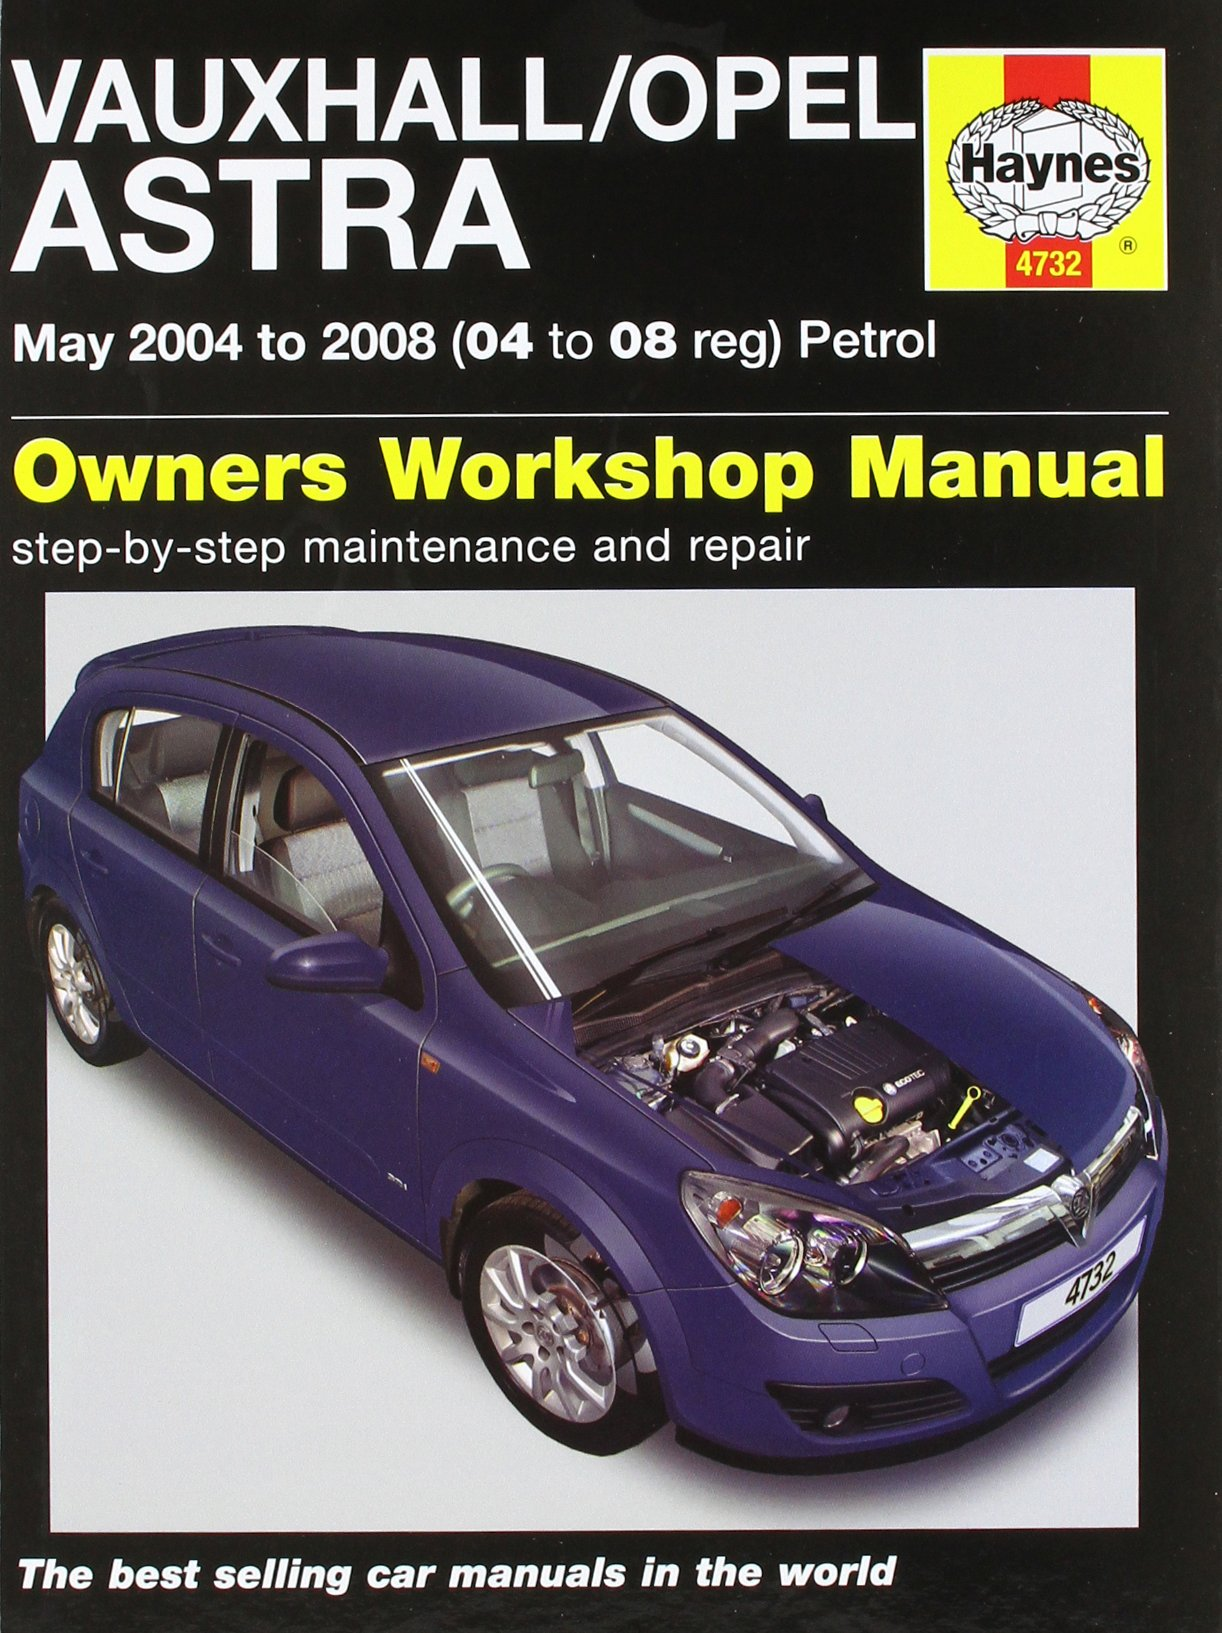 Vauxhall/Opel Astra: May 2004 to 2008 (04 to 08 Reg) Petrol (Service & repair  manuals): Amazon.co.uk: John S Mead: 9781844257324: Books